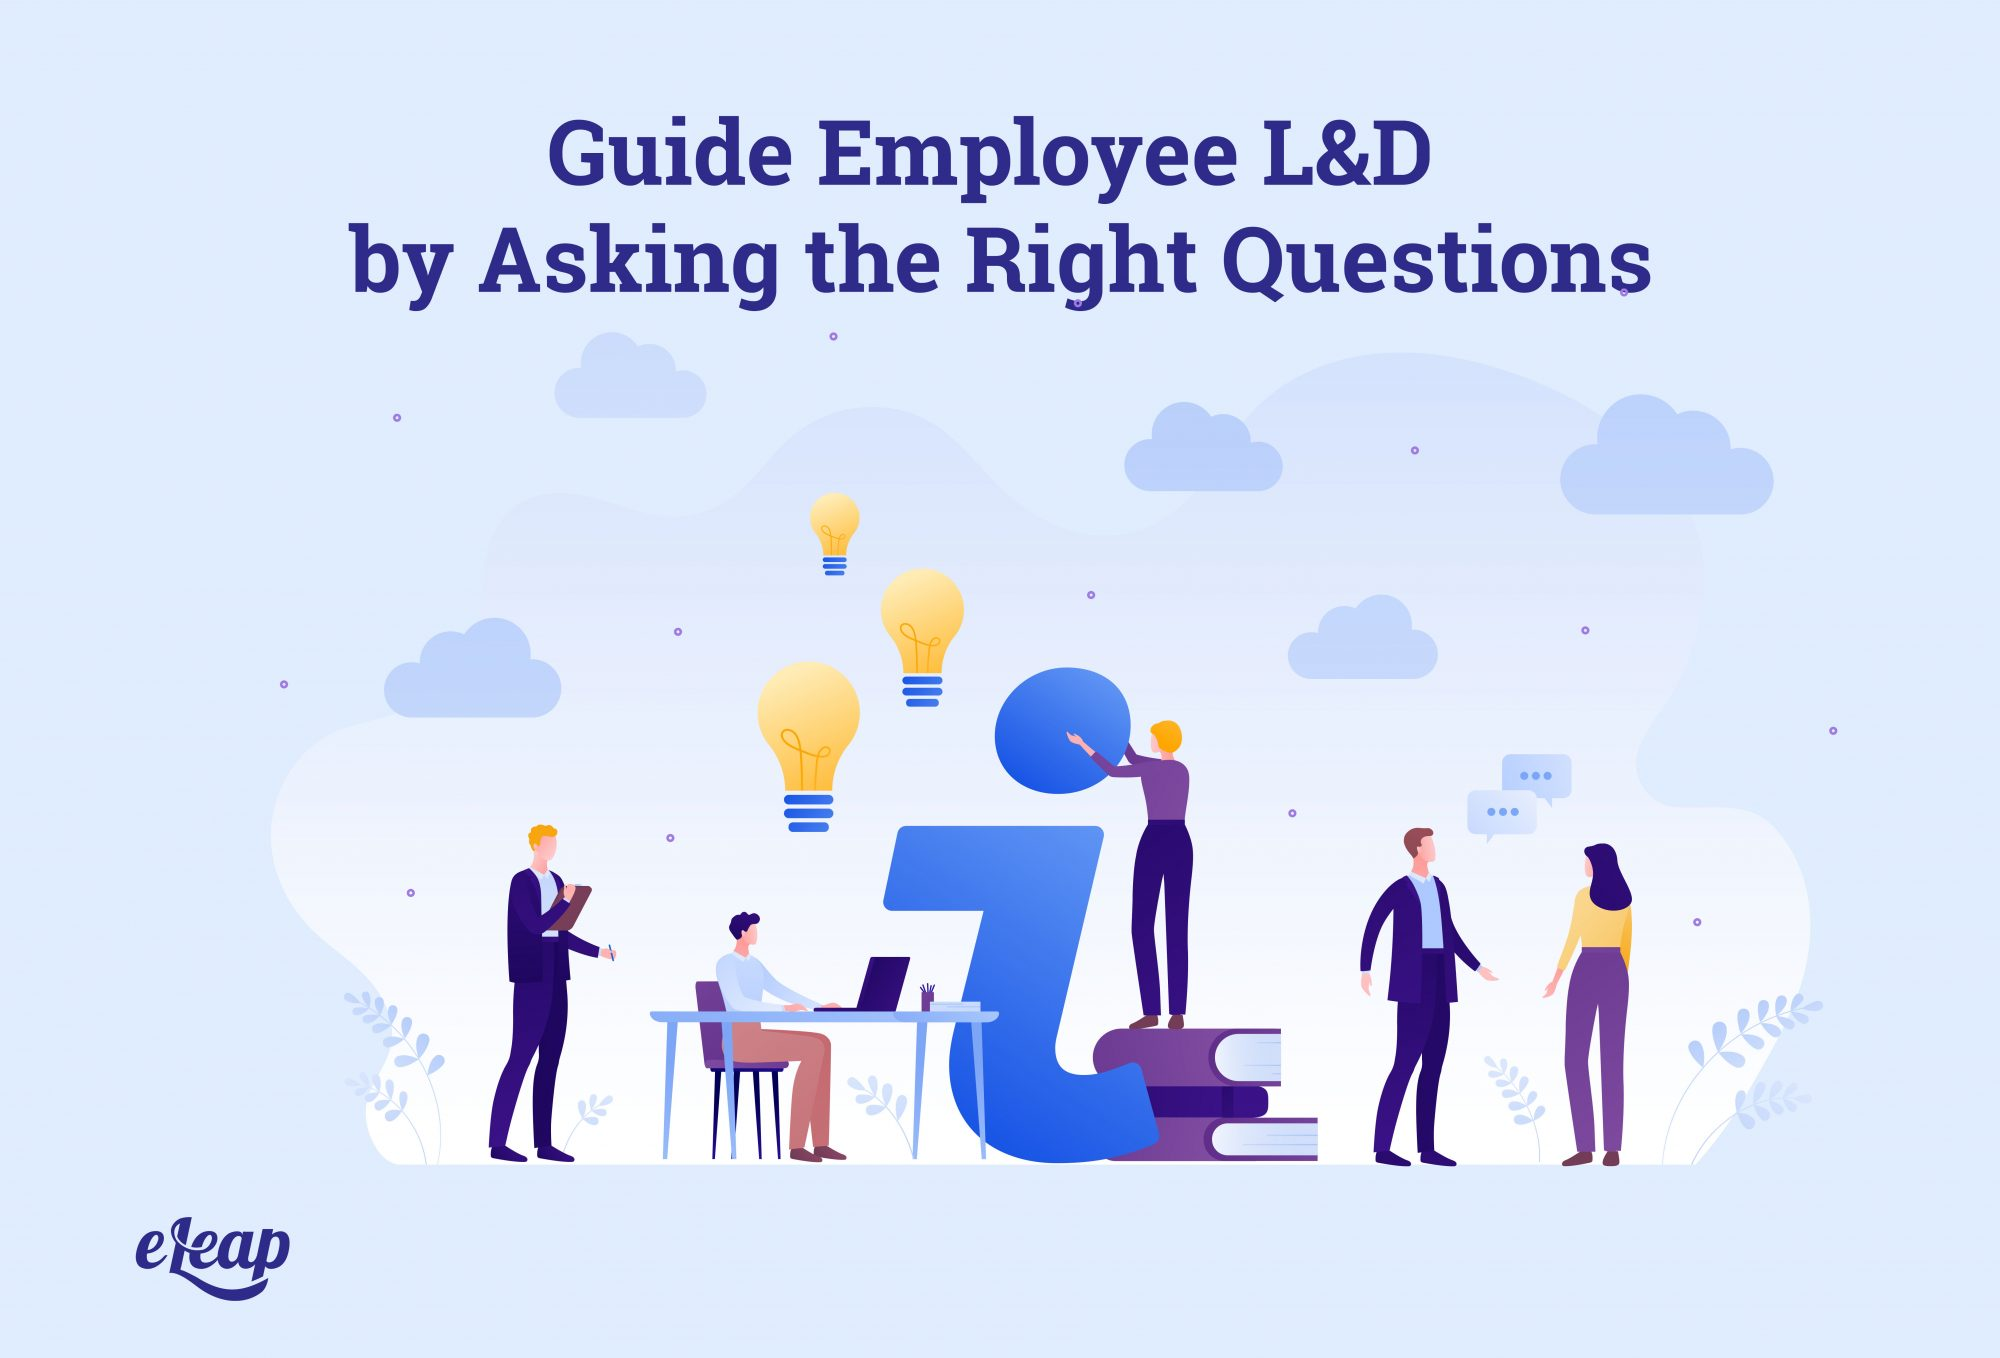 Guide Employee L&D by Asking the Right Questions